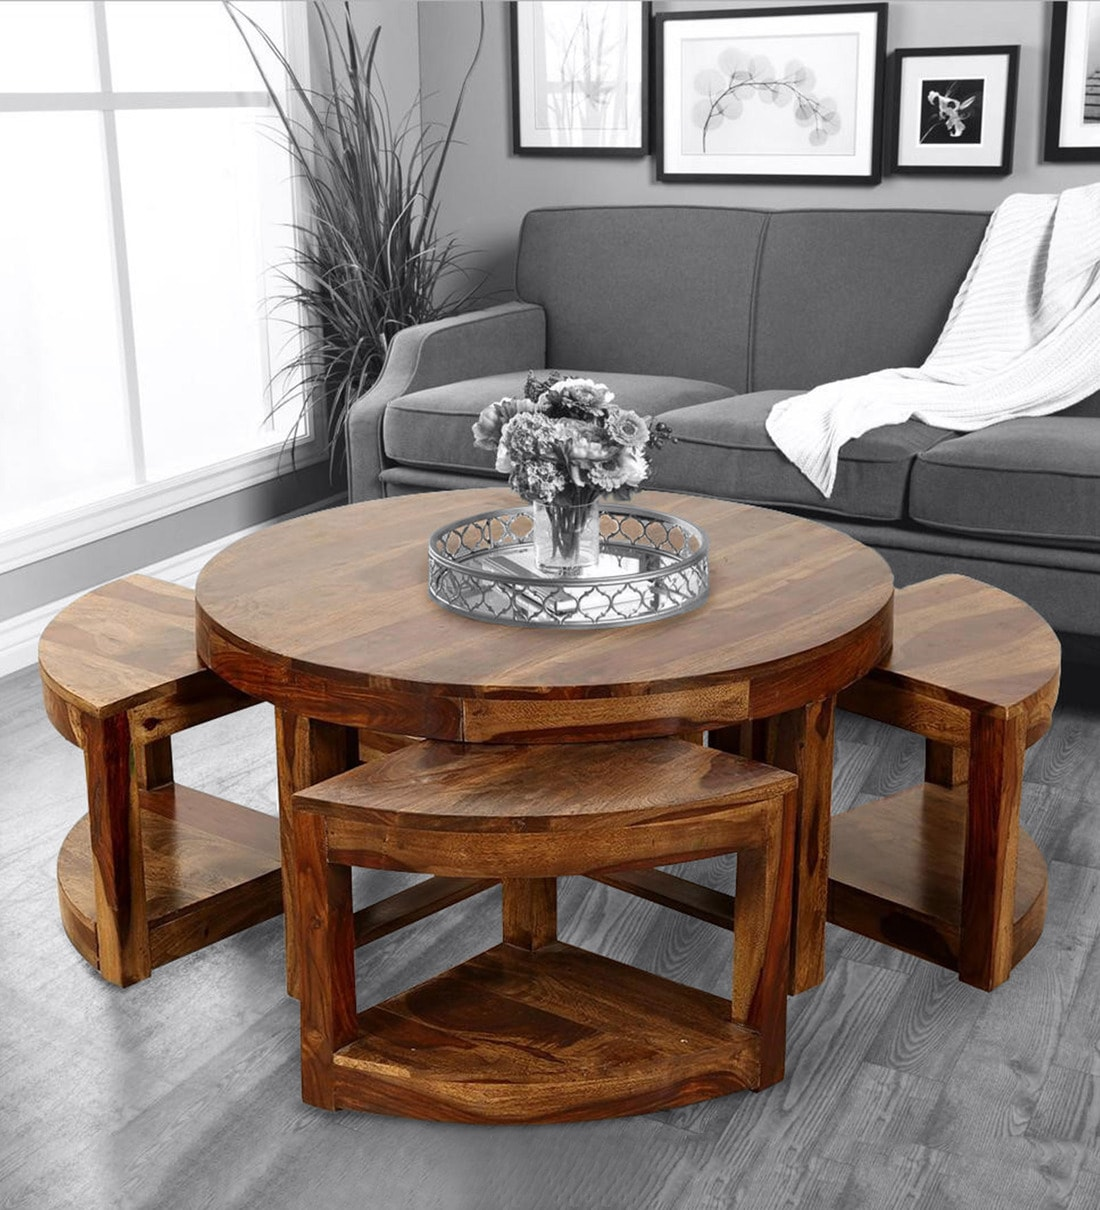 Vega Coffee Table With Stools In Honey Finish